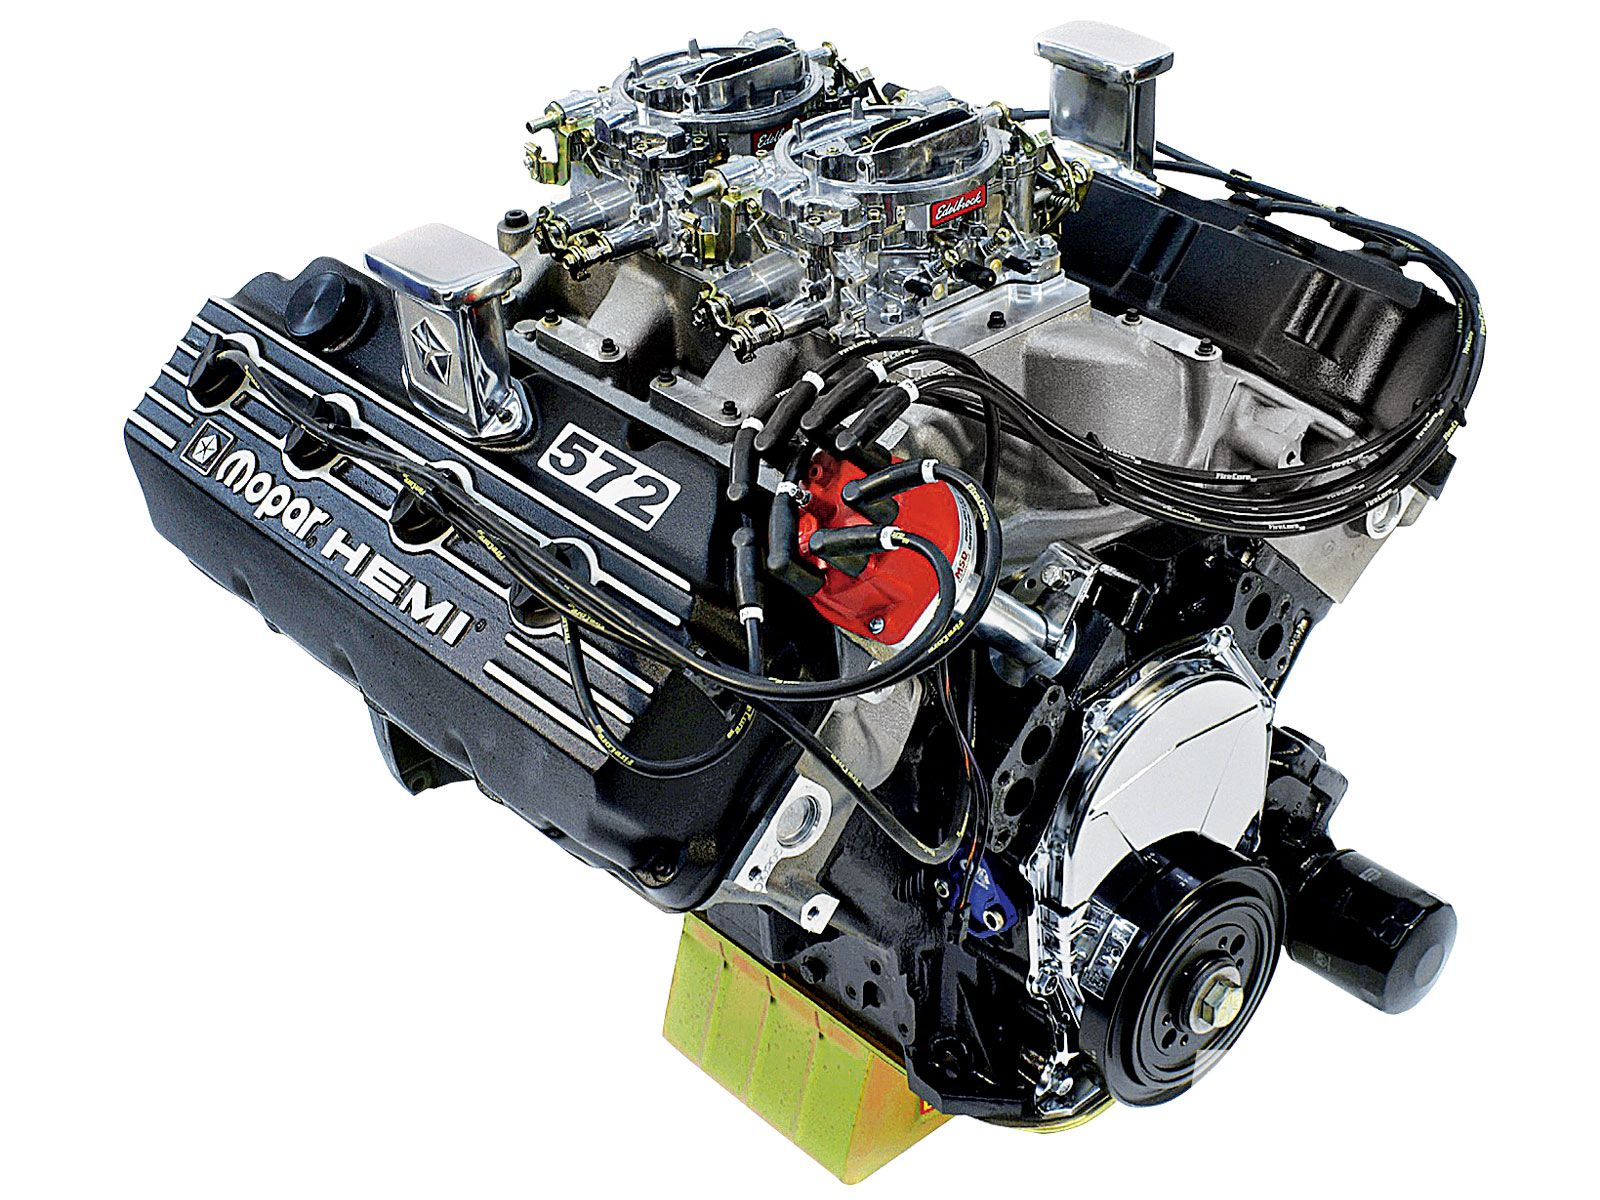 Pin by Muscle Car Definition on Dodge | Hemi engine